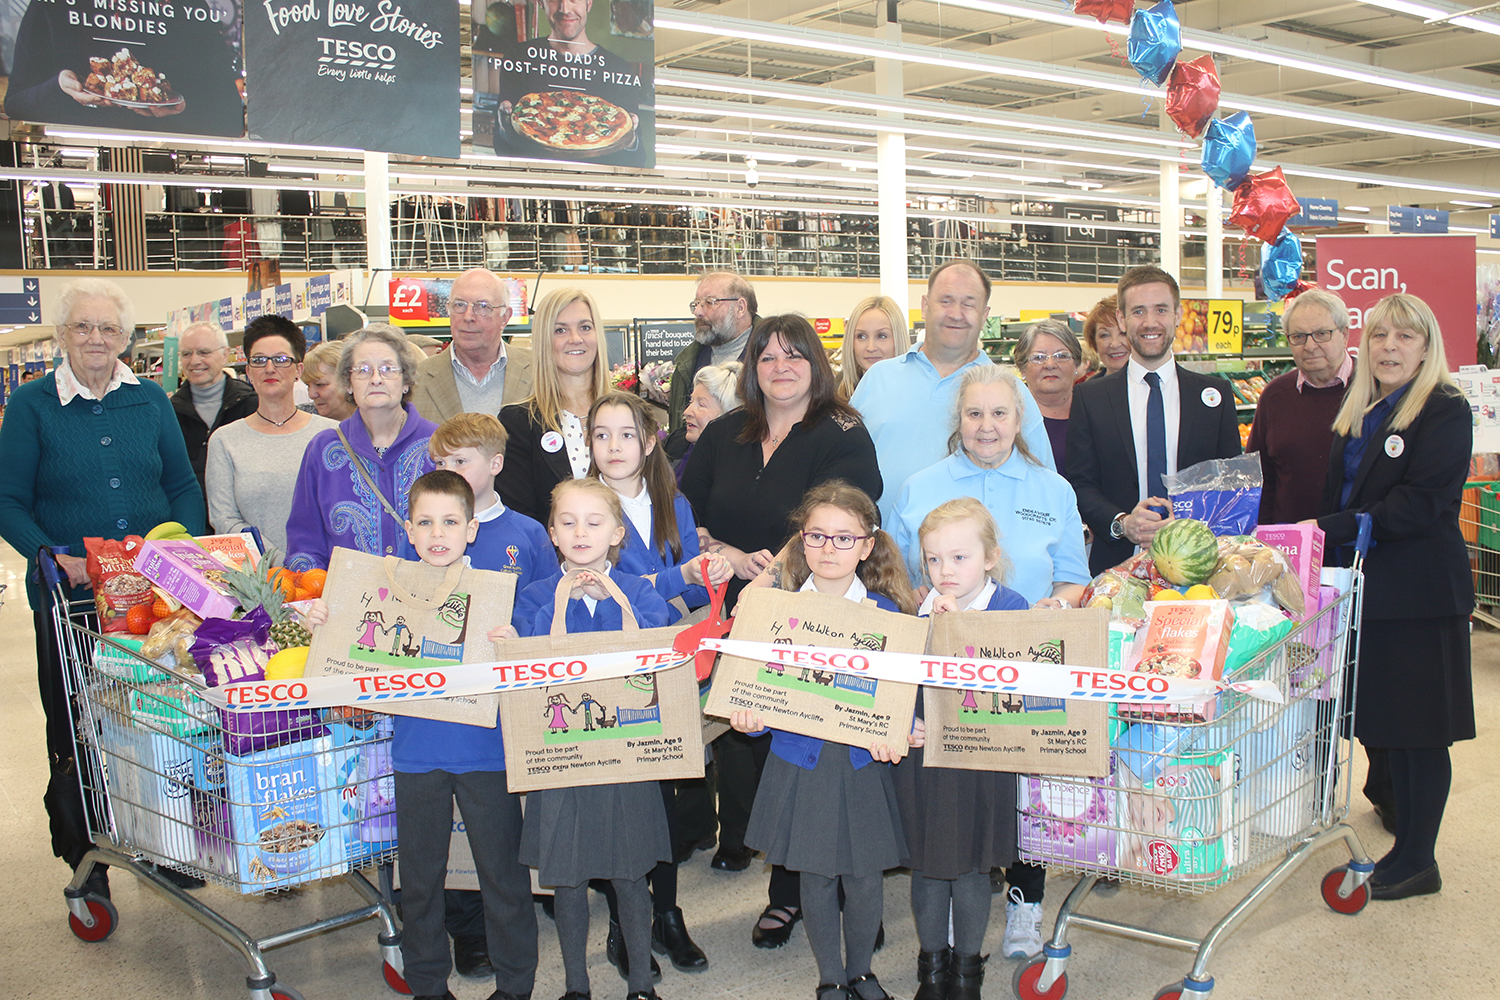 Shoppers Help Tesco Celebrate New Additions To Their Store